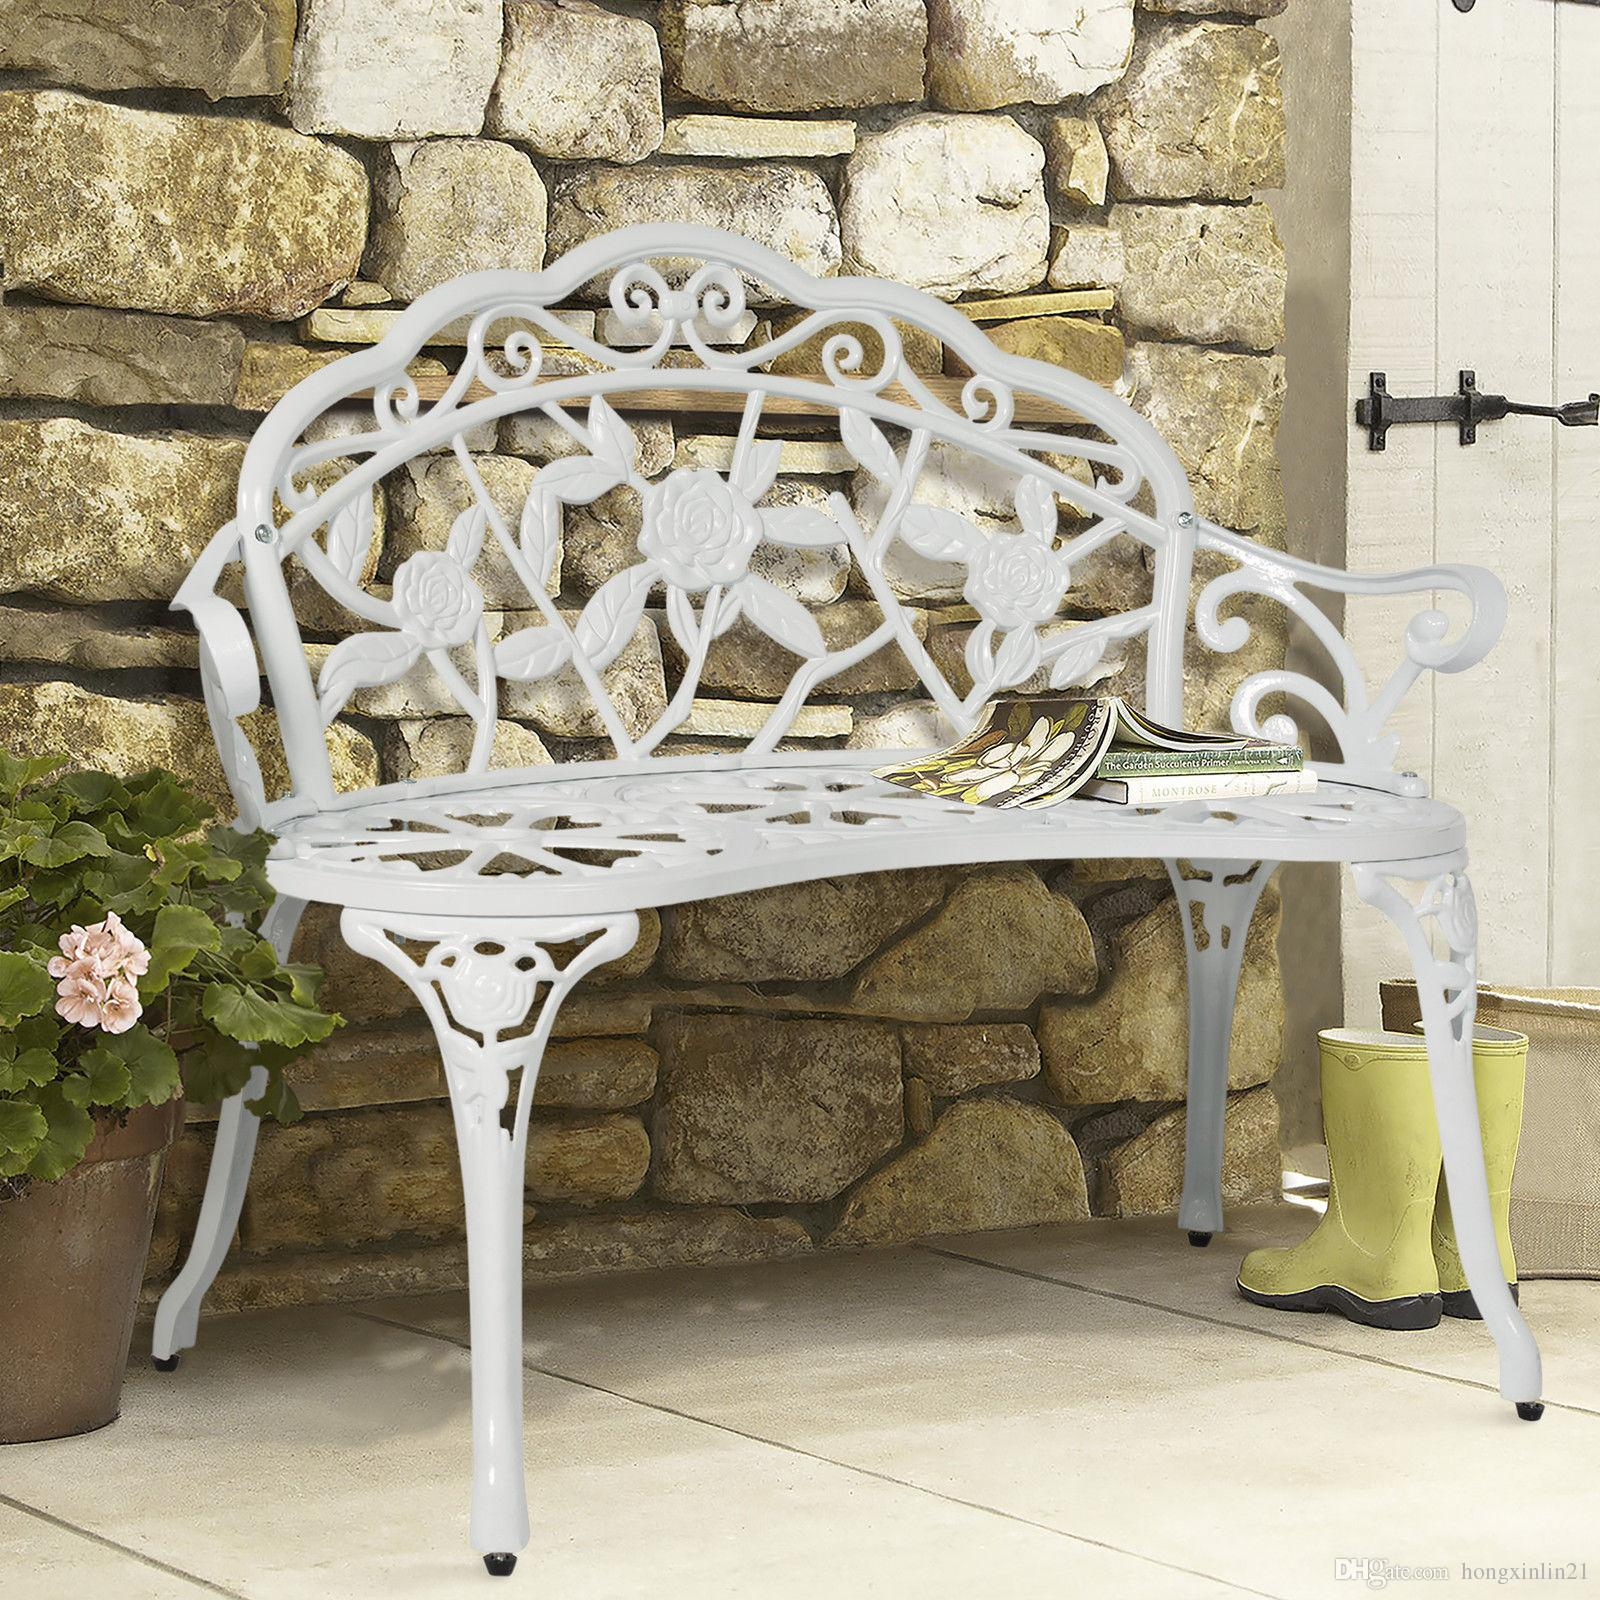 2019 BCP Outdoor Patio Garden Bench Park Yard Furniture Cast Iron